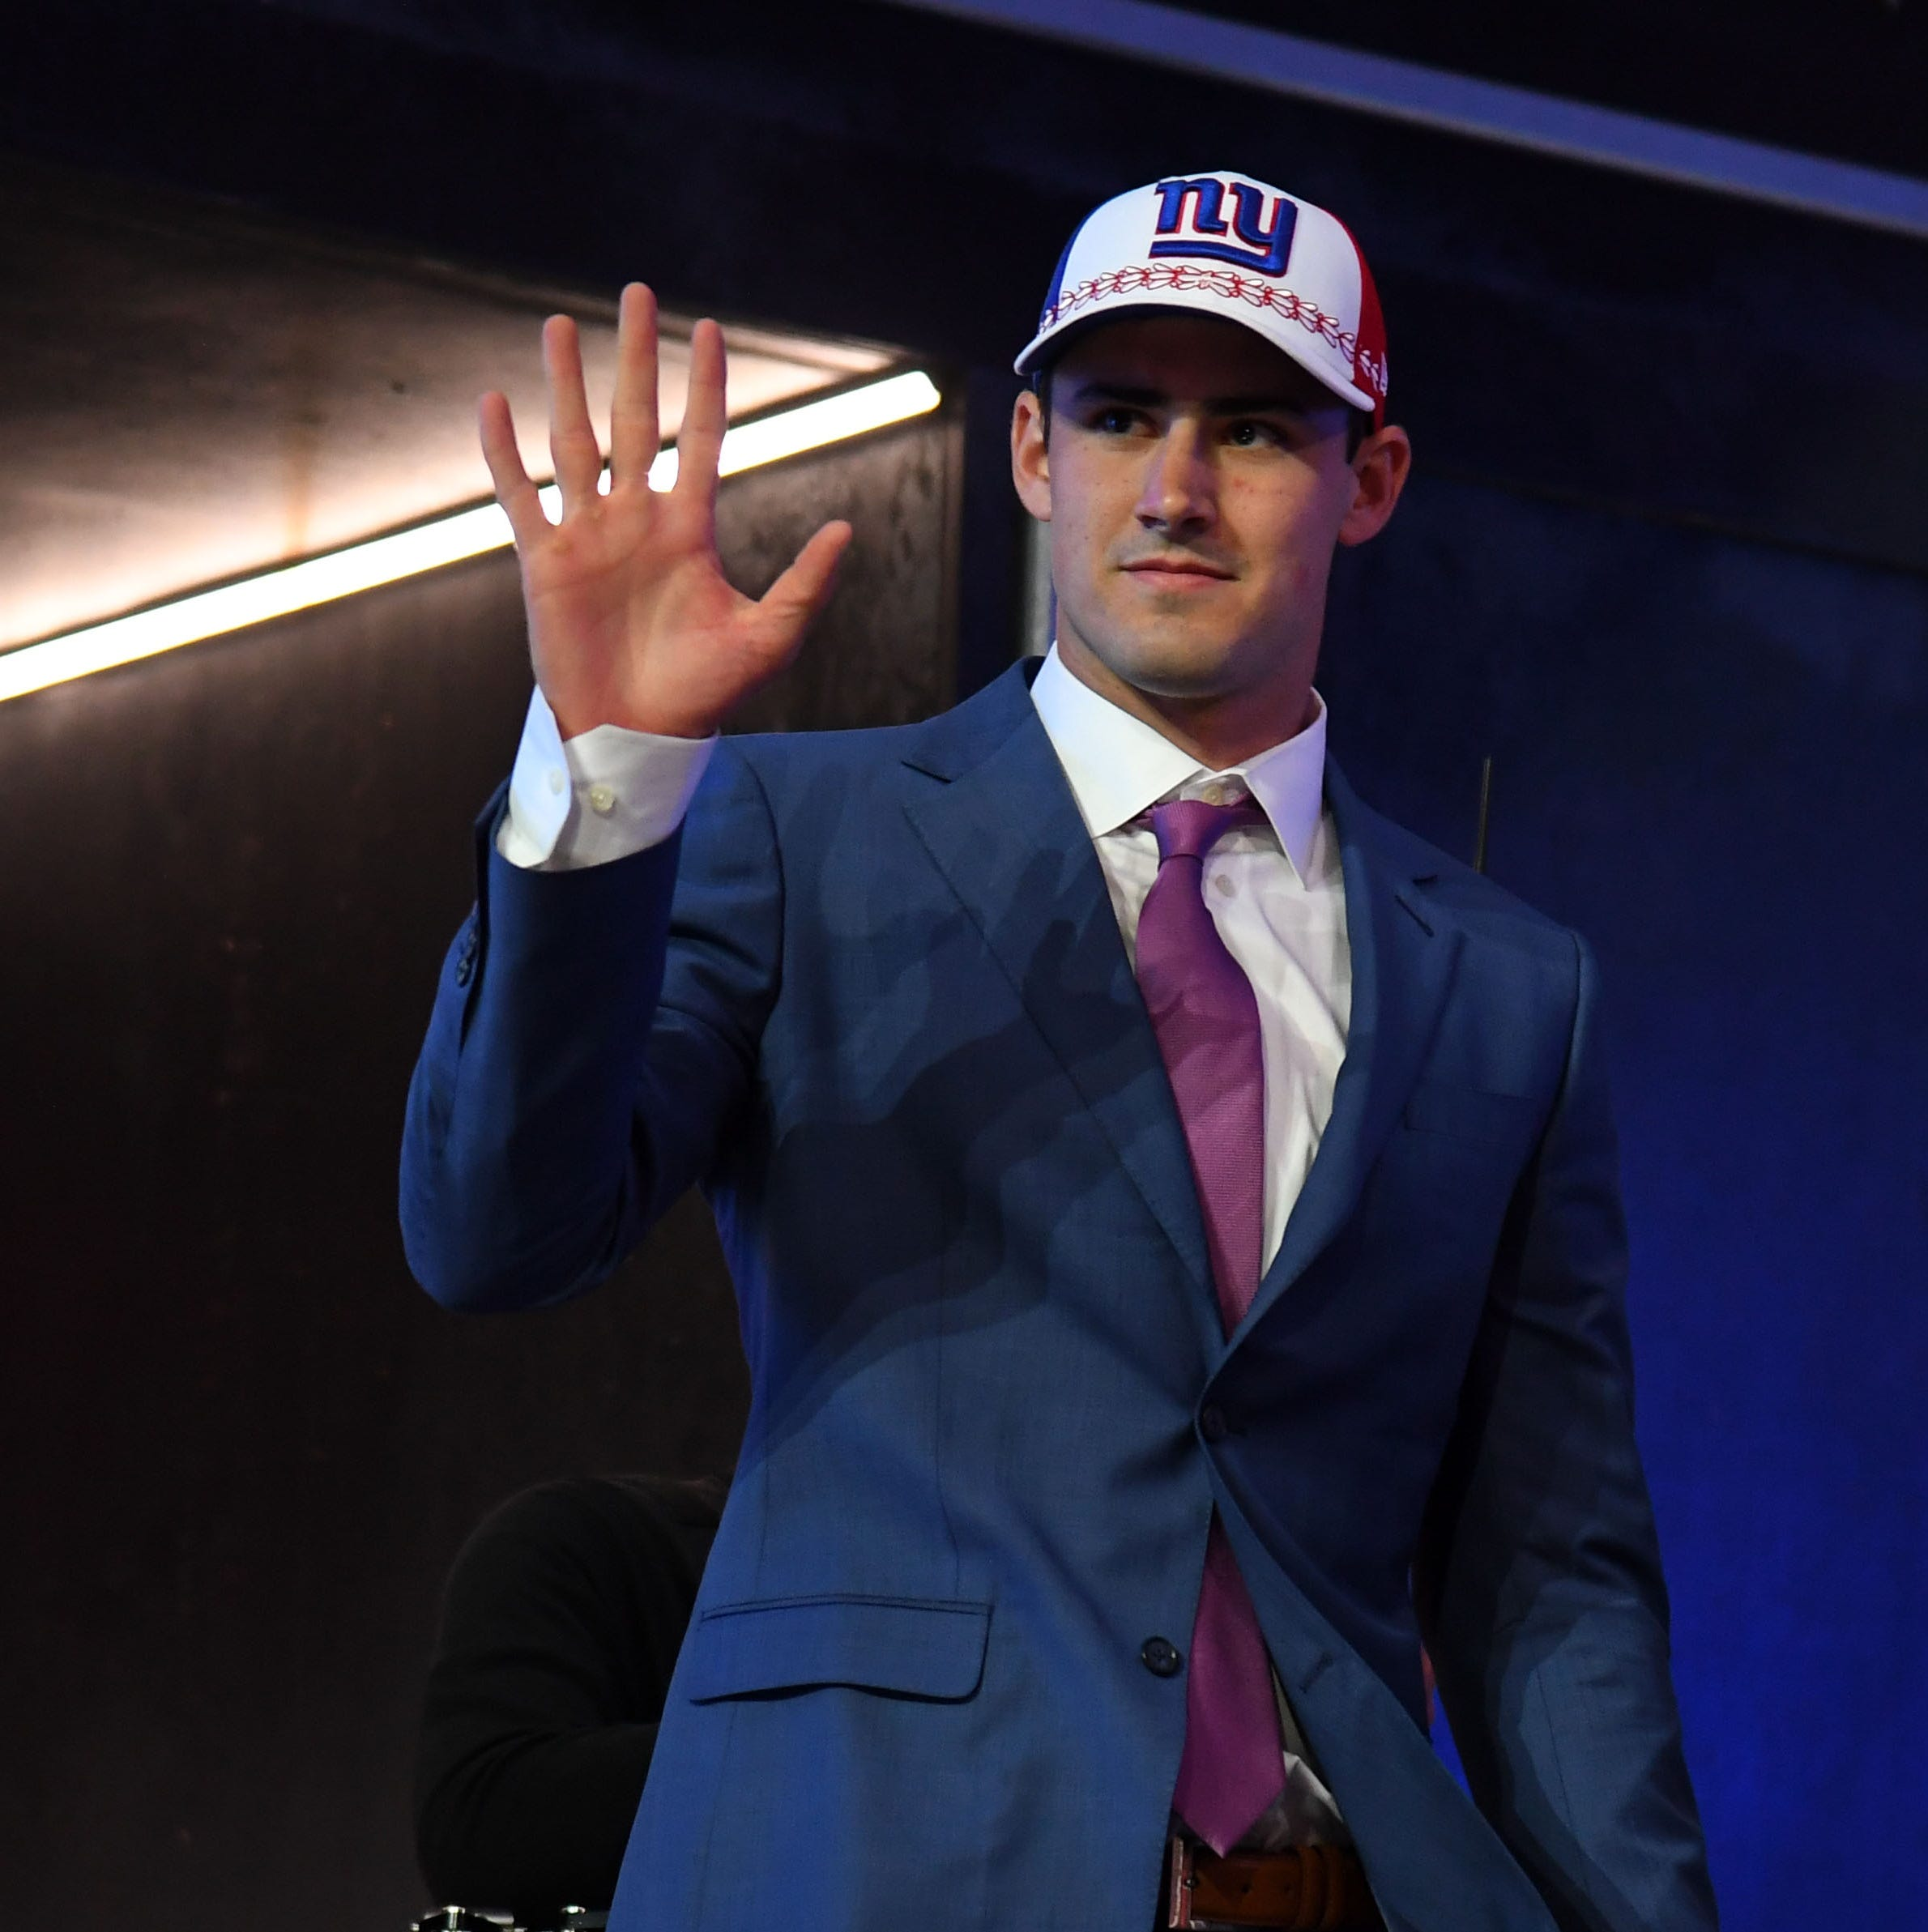 NFL Draft: NY Giants takeaways after the first round and headed into Day 2